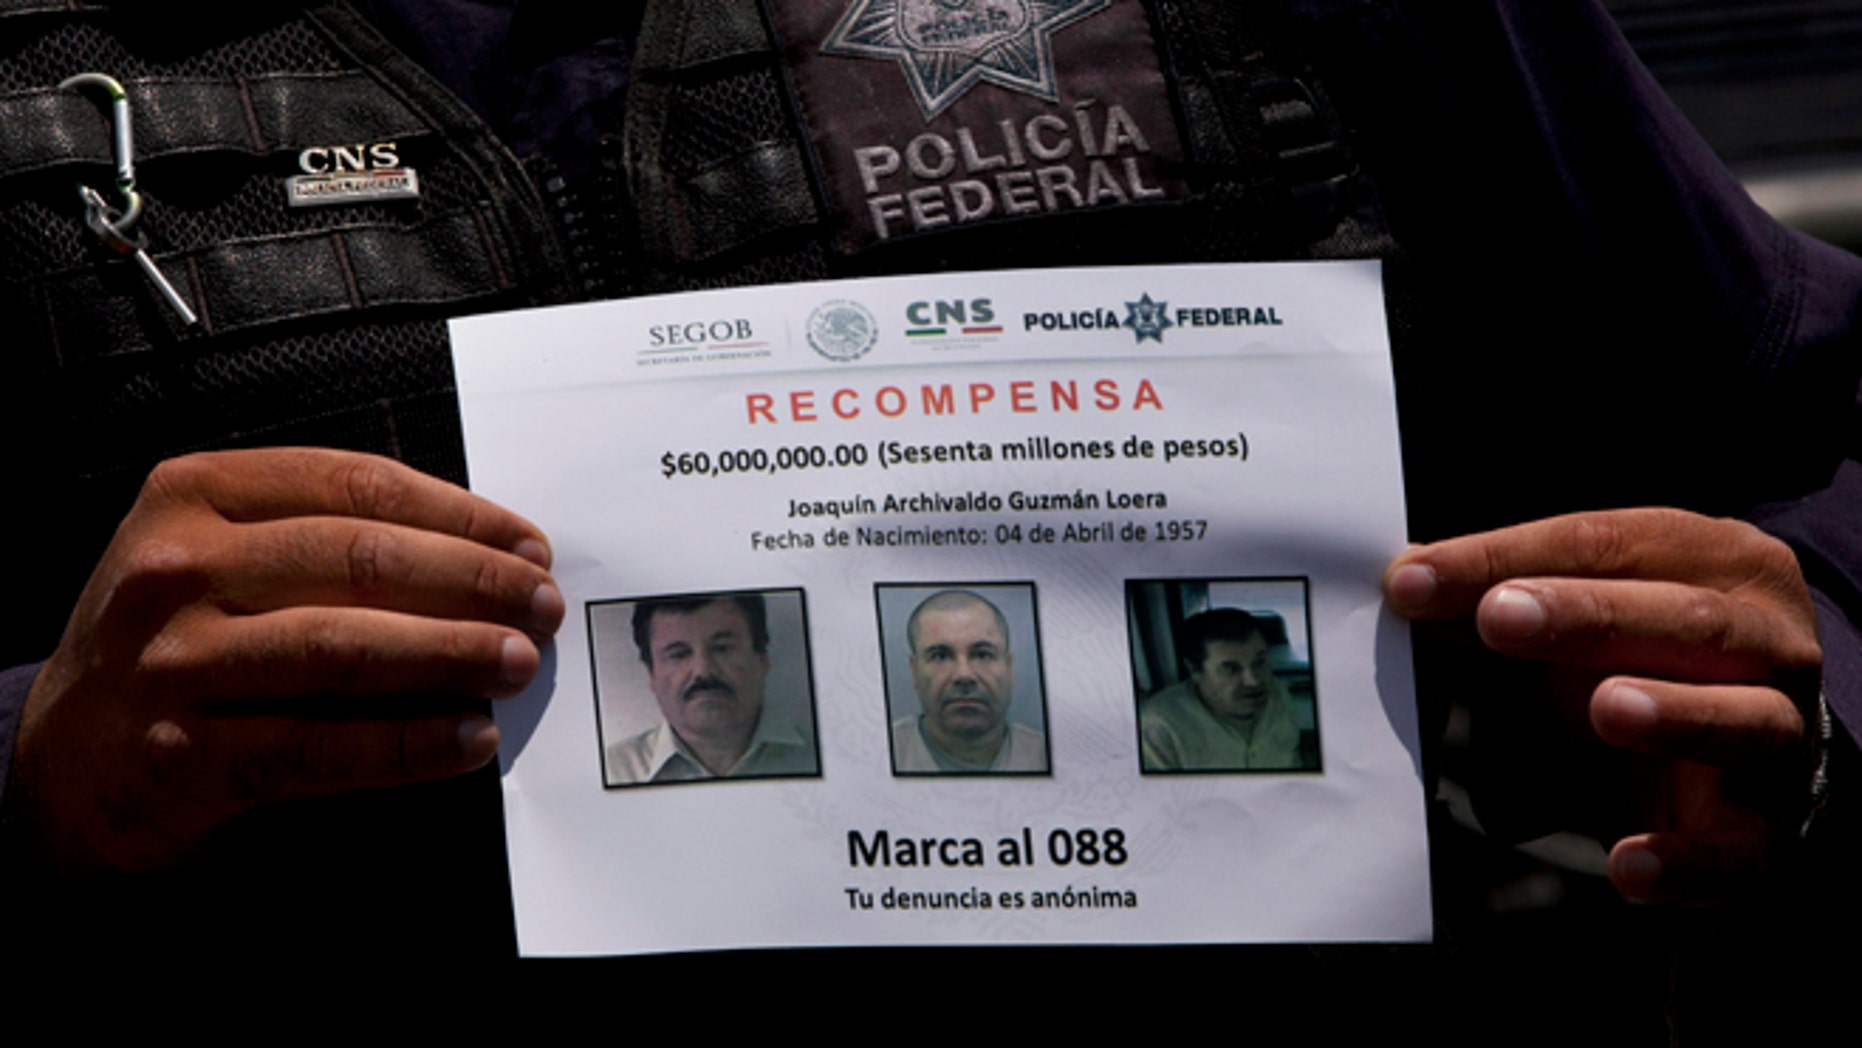 """In this July 16, 2015, photo, a Federal Police shows a reward notice for information leading to the capture of drug lord Joaquin """"El Chapo"""" Guzman, who made his escape from the Altiplano maximum security prison via an underground tunnel,  in Almoloya, west of Mexico City. The Drug Enforcement Administration's deputy administrator says he is confident one of the world's most-wanted drug traffickers will be captured again after a brazen weekend escape from a maximum-security Mexican prison.  (AP Photo/Marco Ugarte)"""